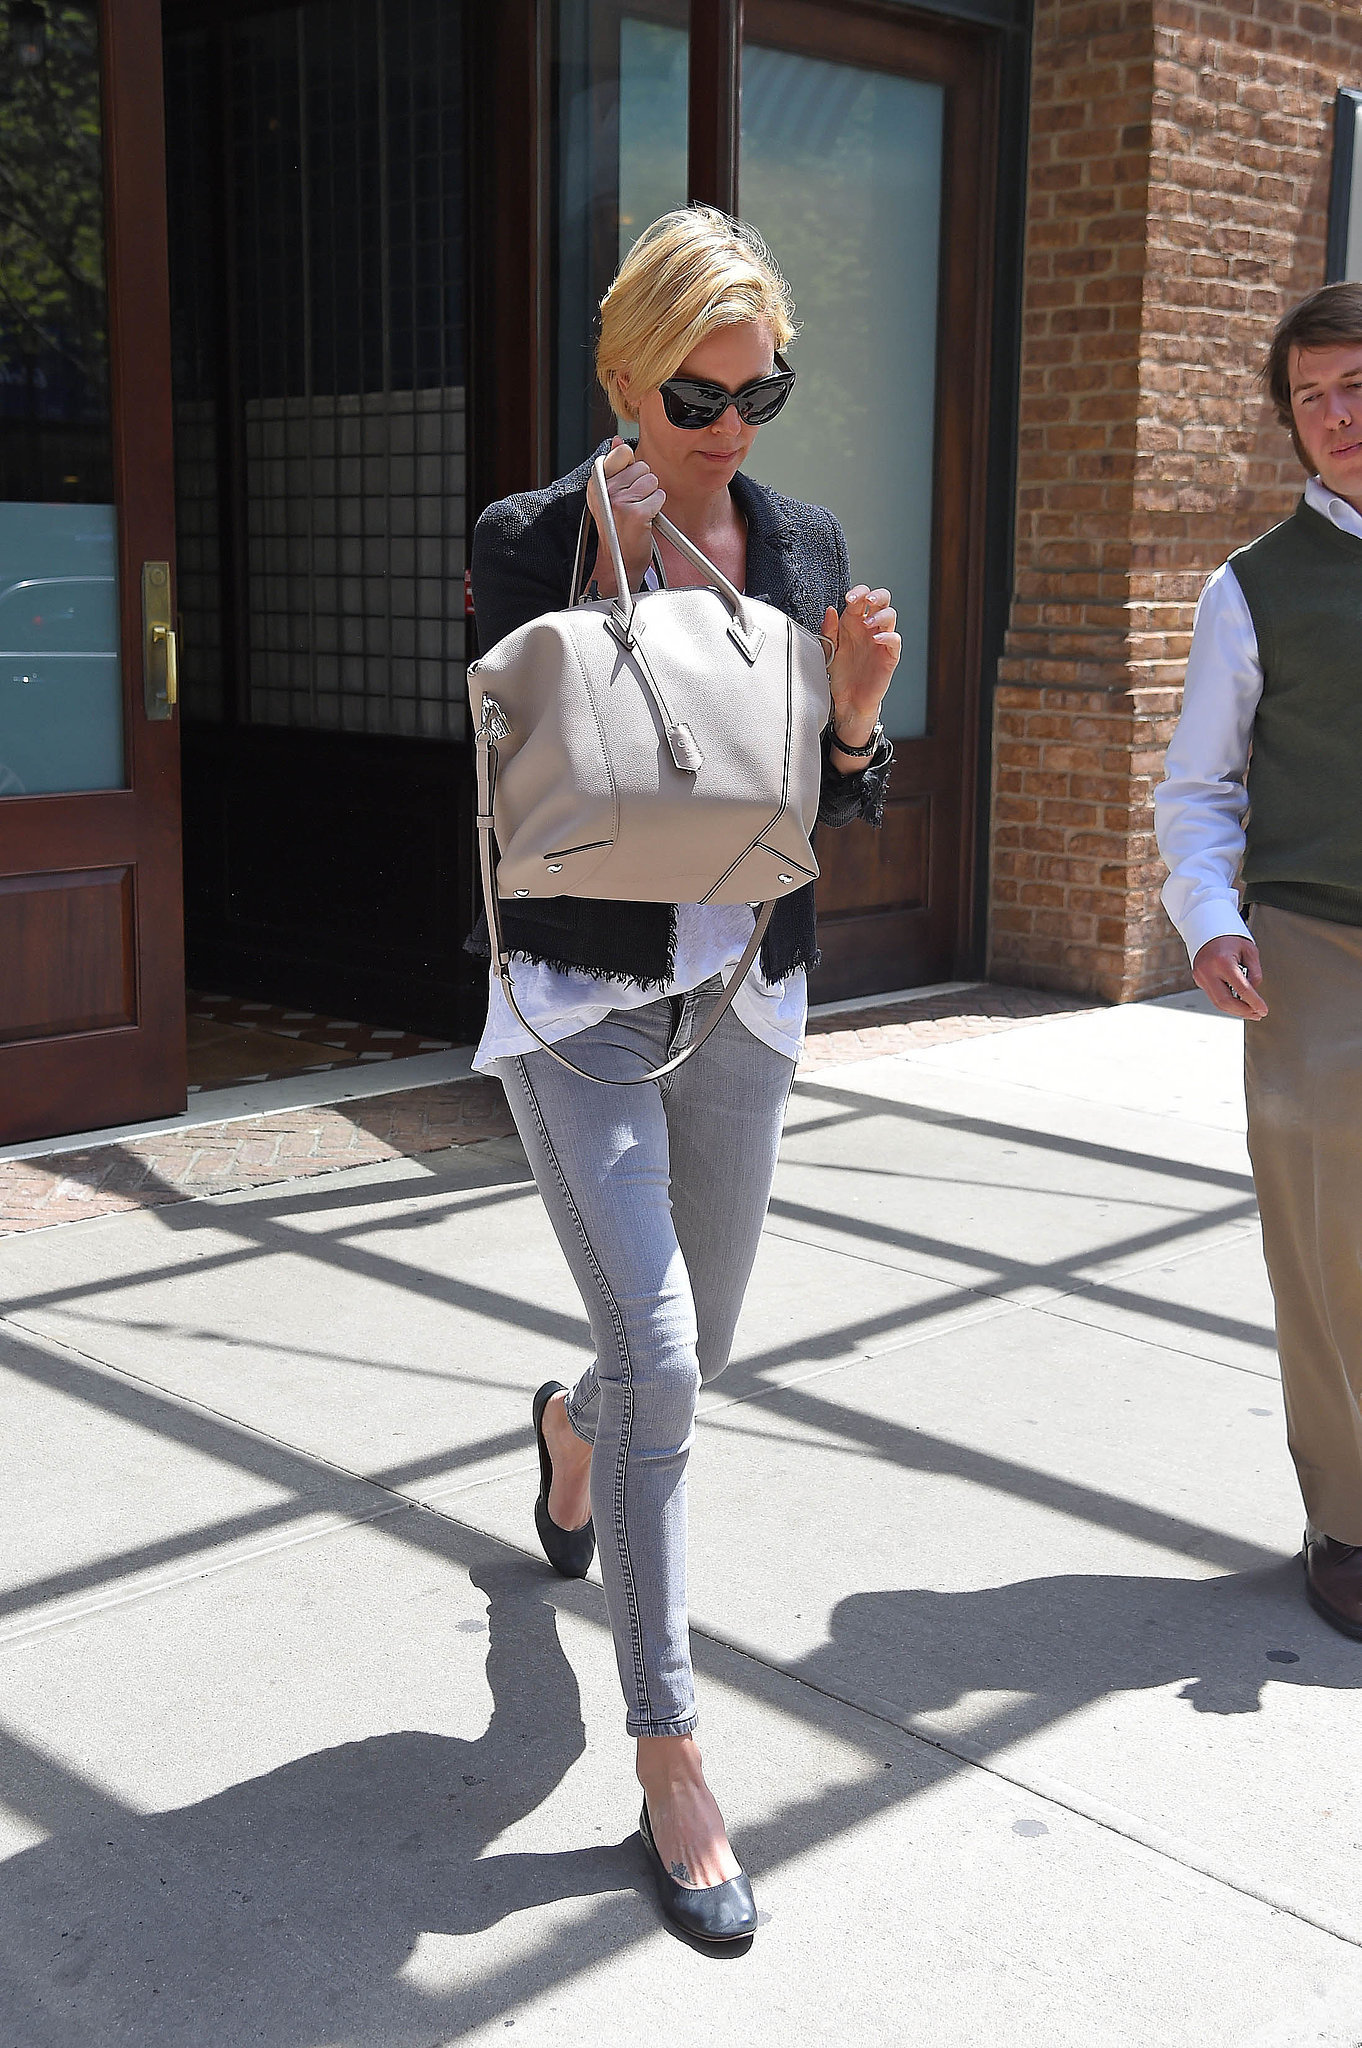 Charlize's off-duty style always feels polished. If she's sporting jeans, you can expect she'll refrain from sloppiness with a tailored blazer.